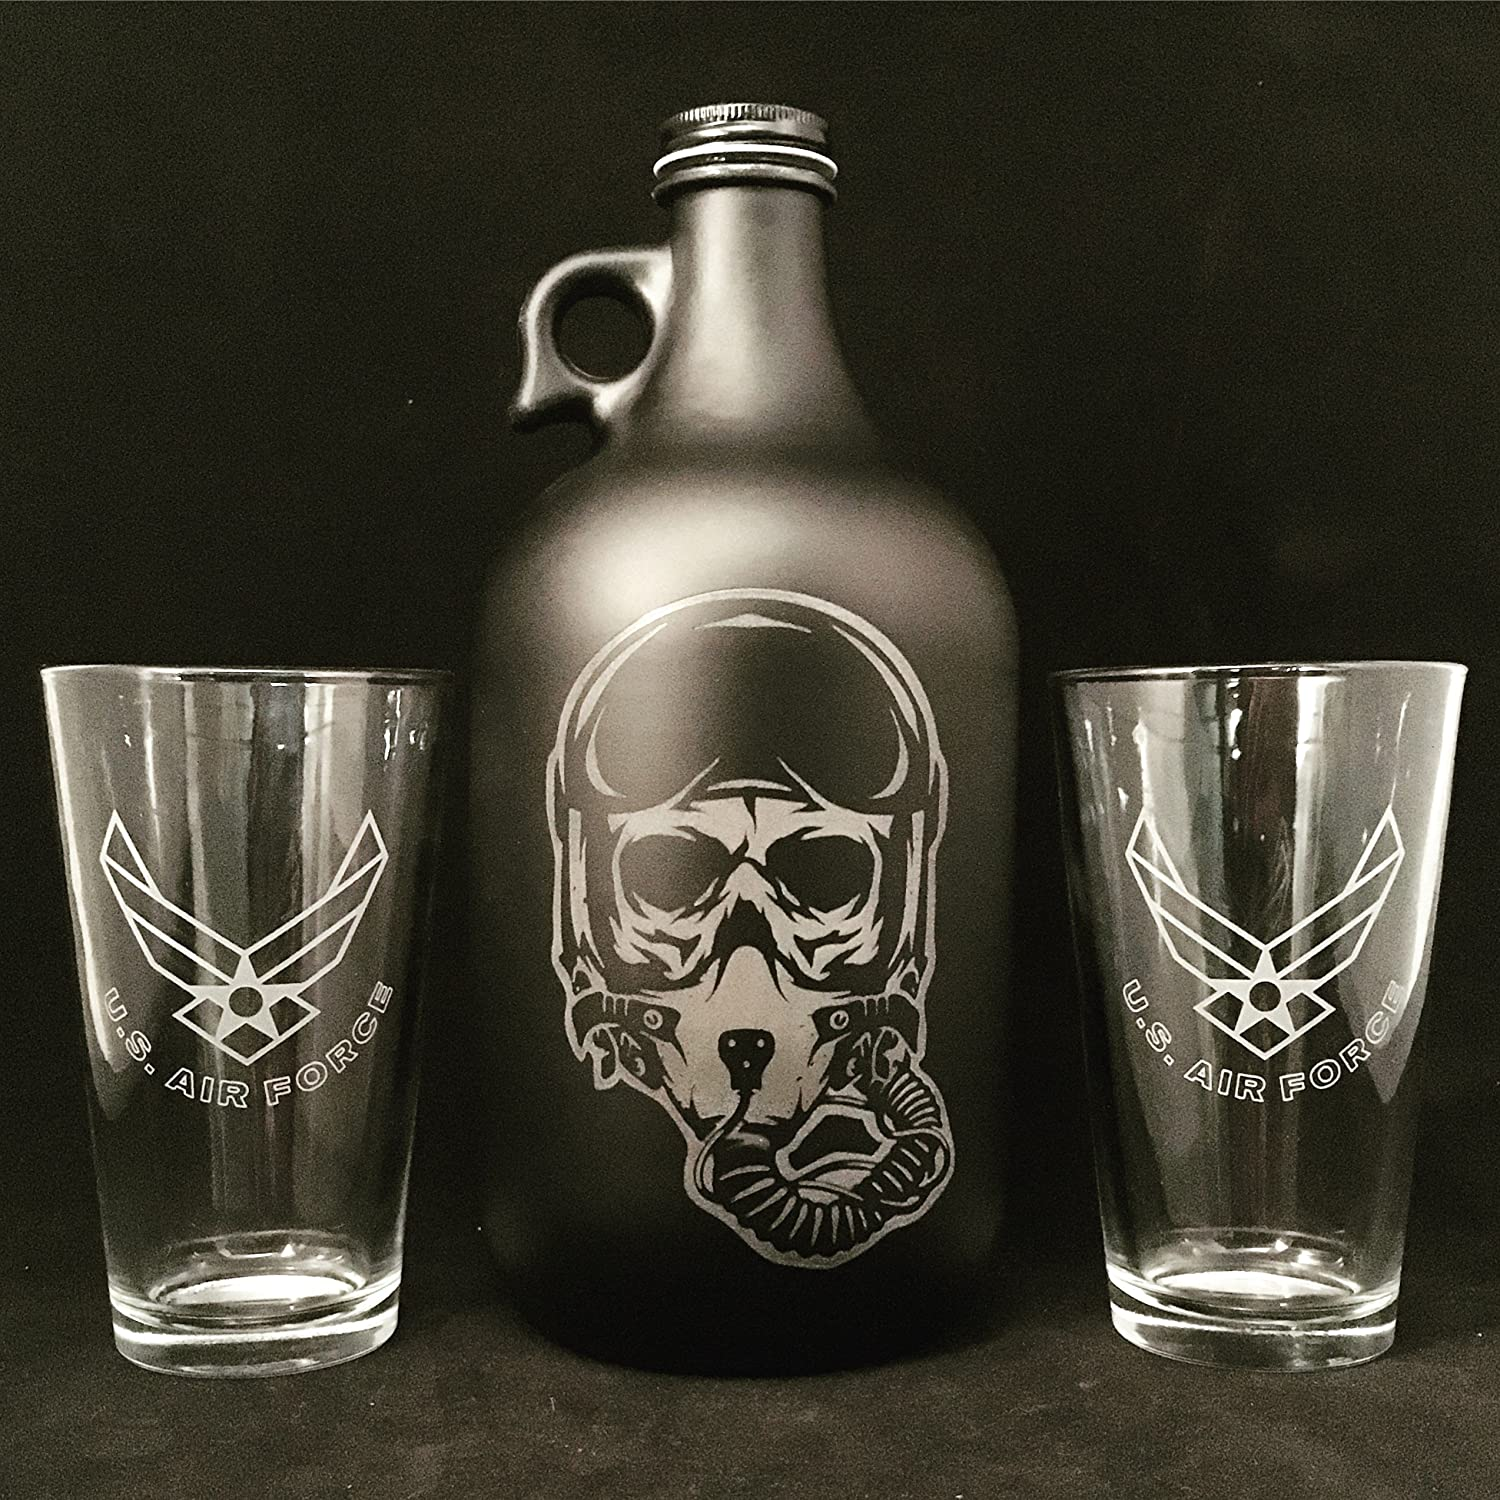 Air Force, Air Force Gifts, Beer Growler, Military, Veteran, Fighter Pilot, Pilot